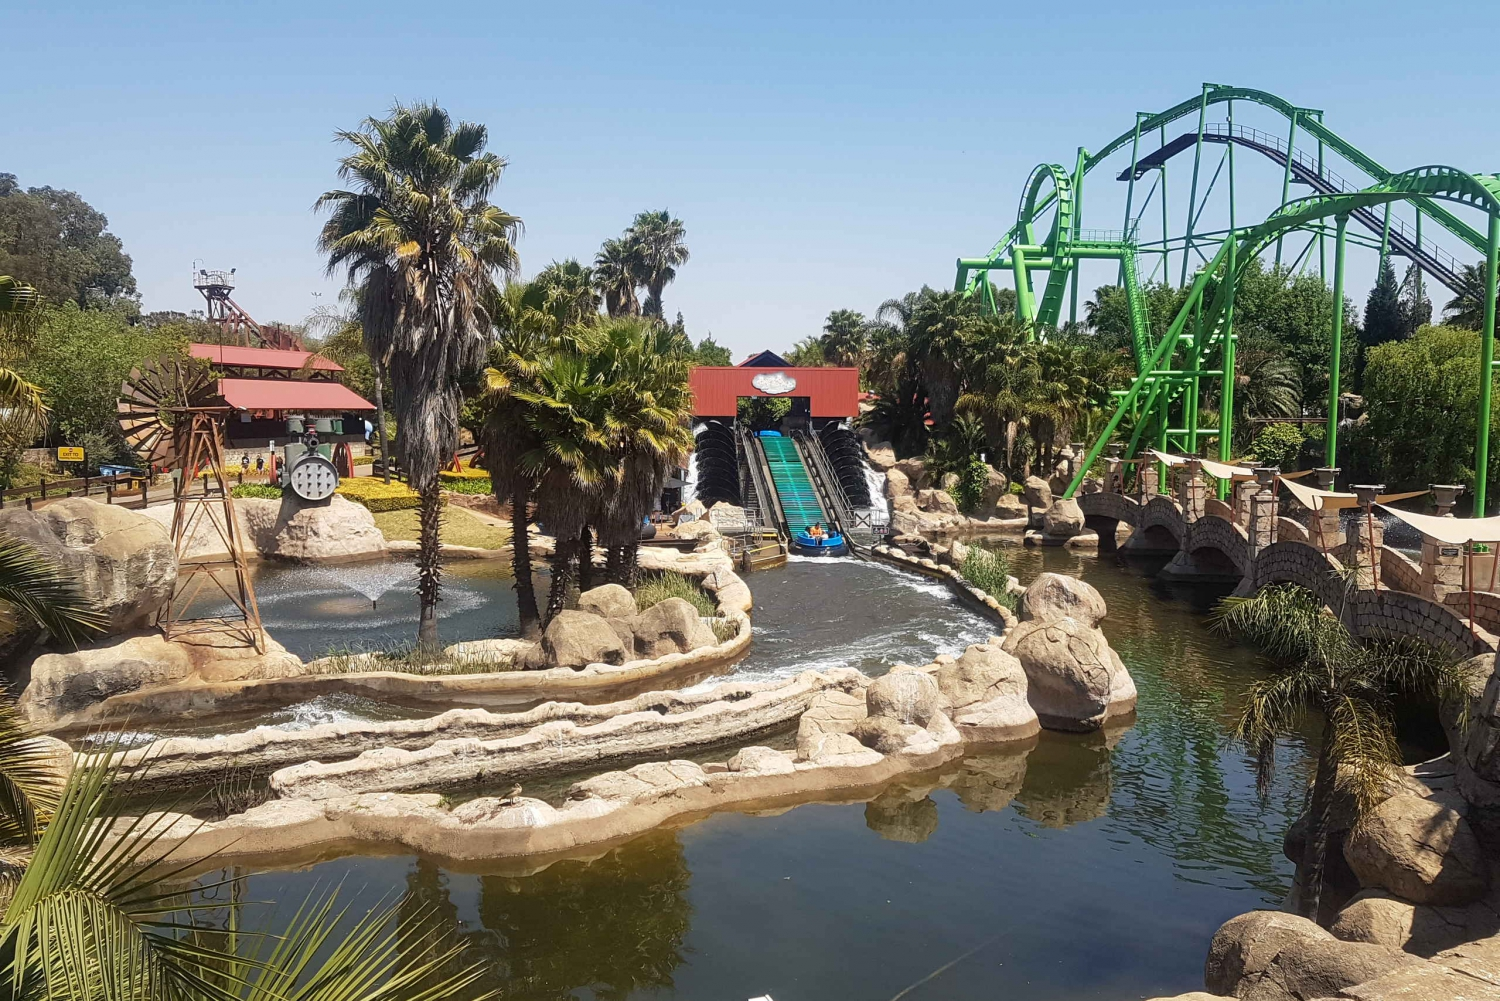 Joburg/Soweto & Gold Reef City Full Day Tour